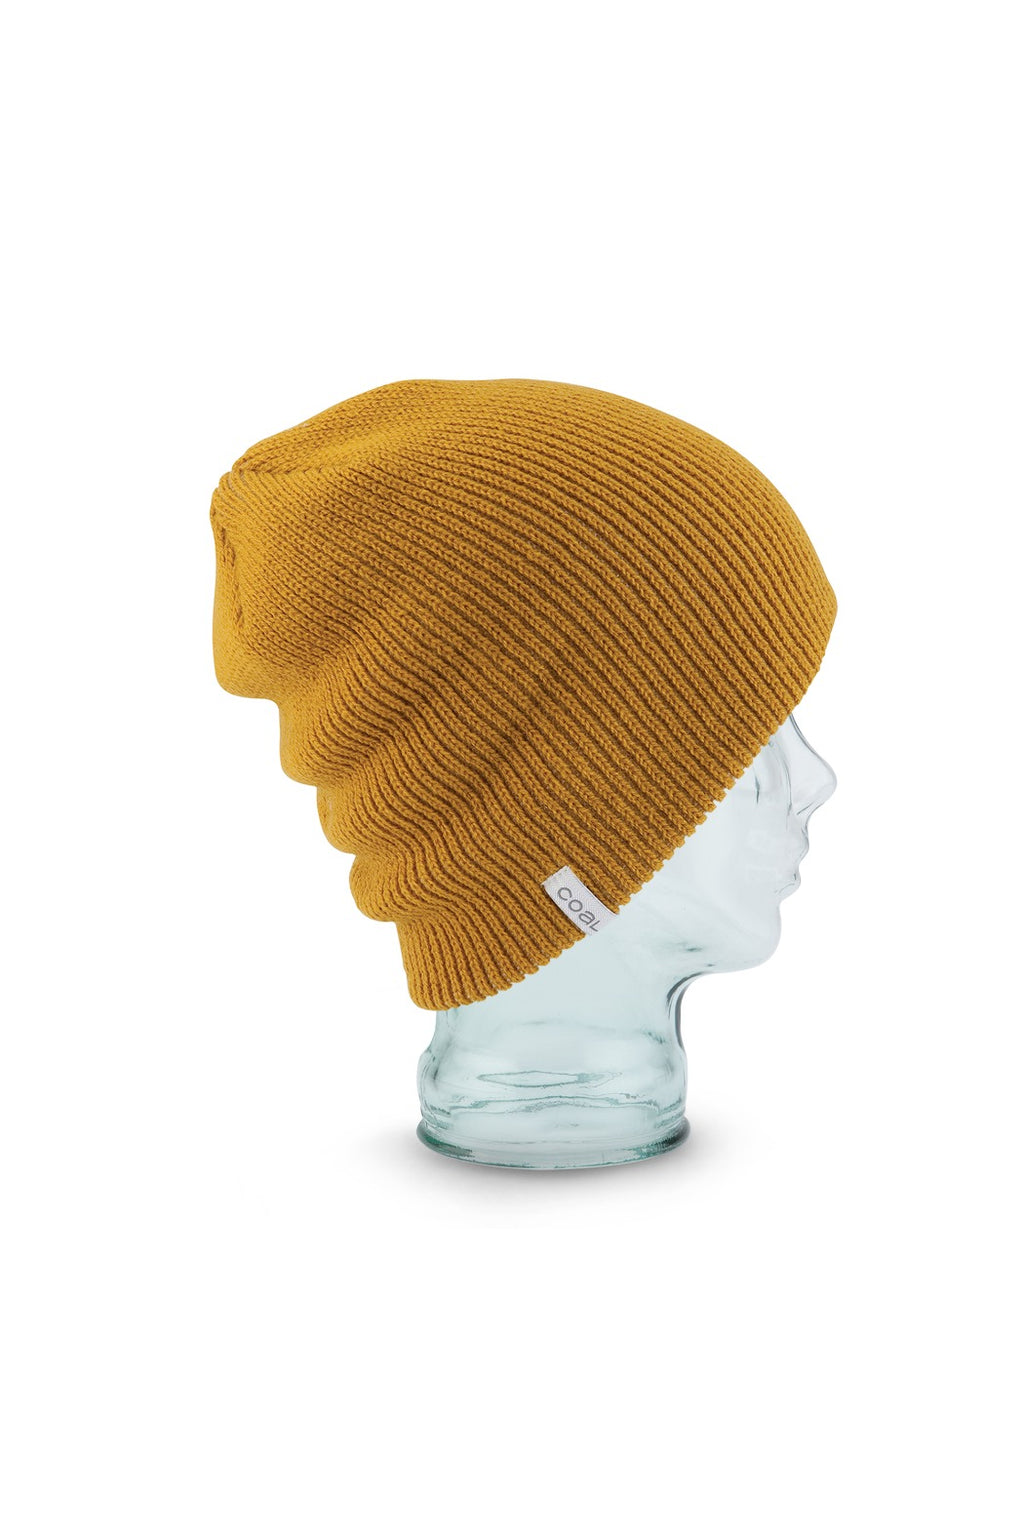 Coal Frena Solid Beanie in Mustard